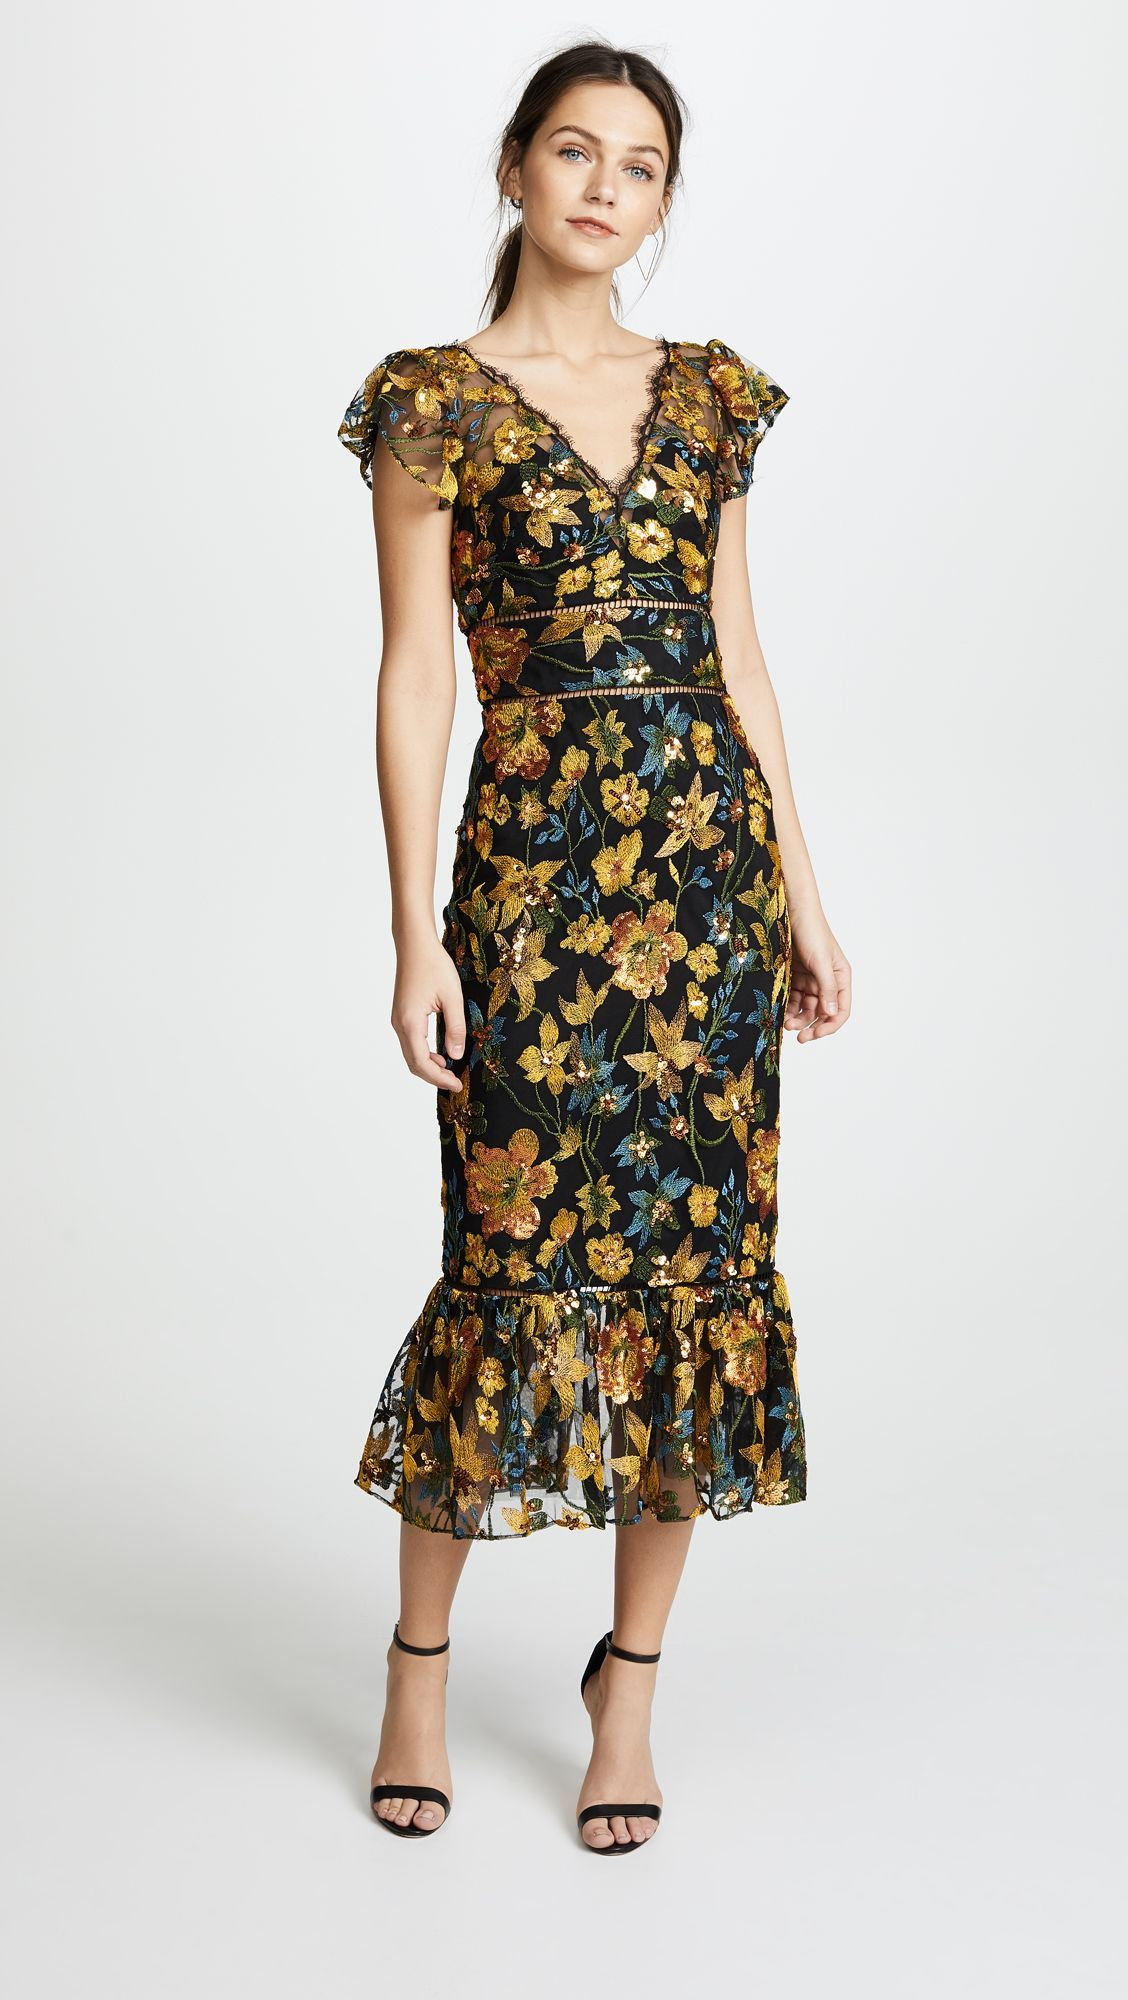 f9f92907 Marchesa Notte Embroidered Cocktail Dress with Flutter Sleeves   SHOPBOP  SAVE UP TO 25% Use Code: GOBIG18 #Cocktaildresses